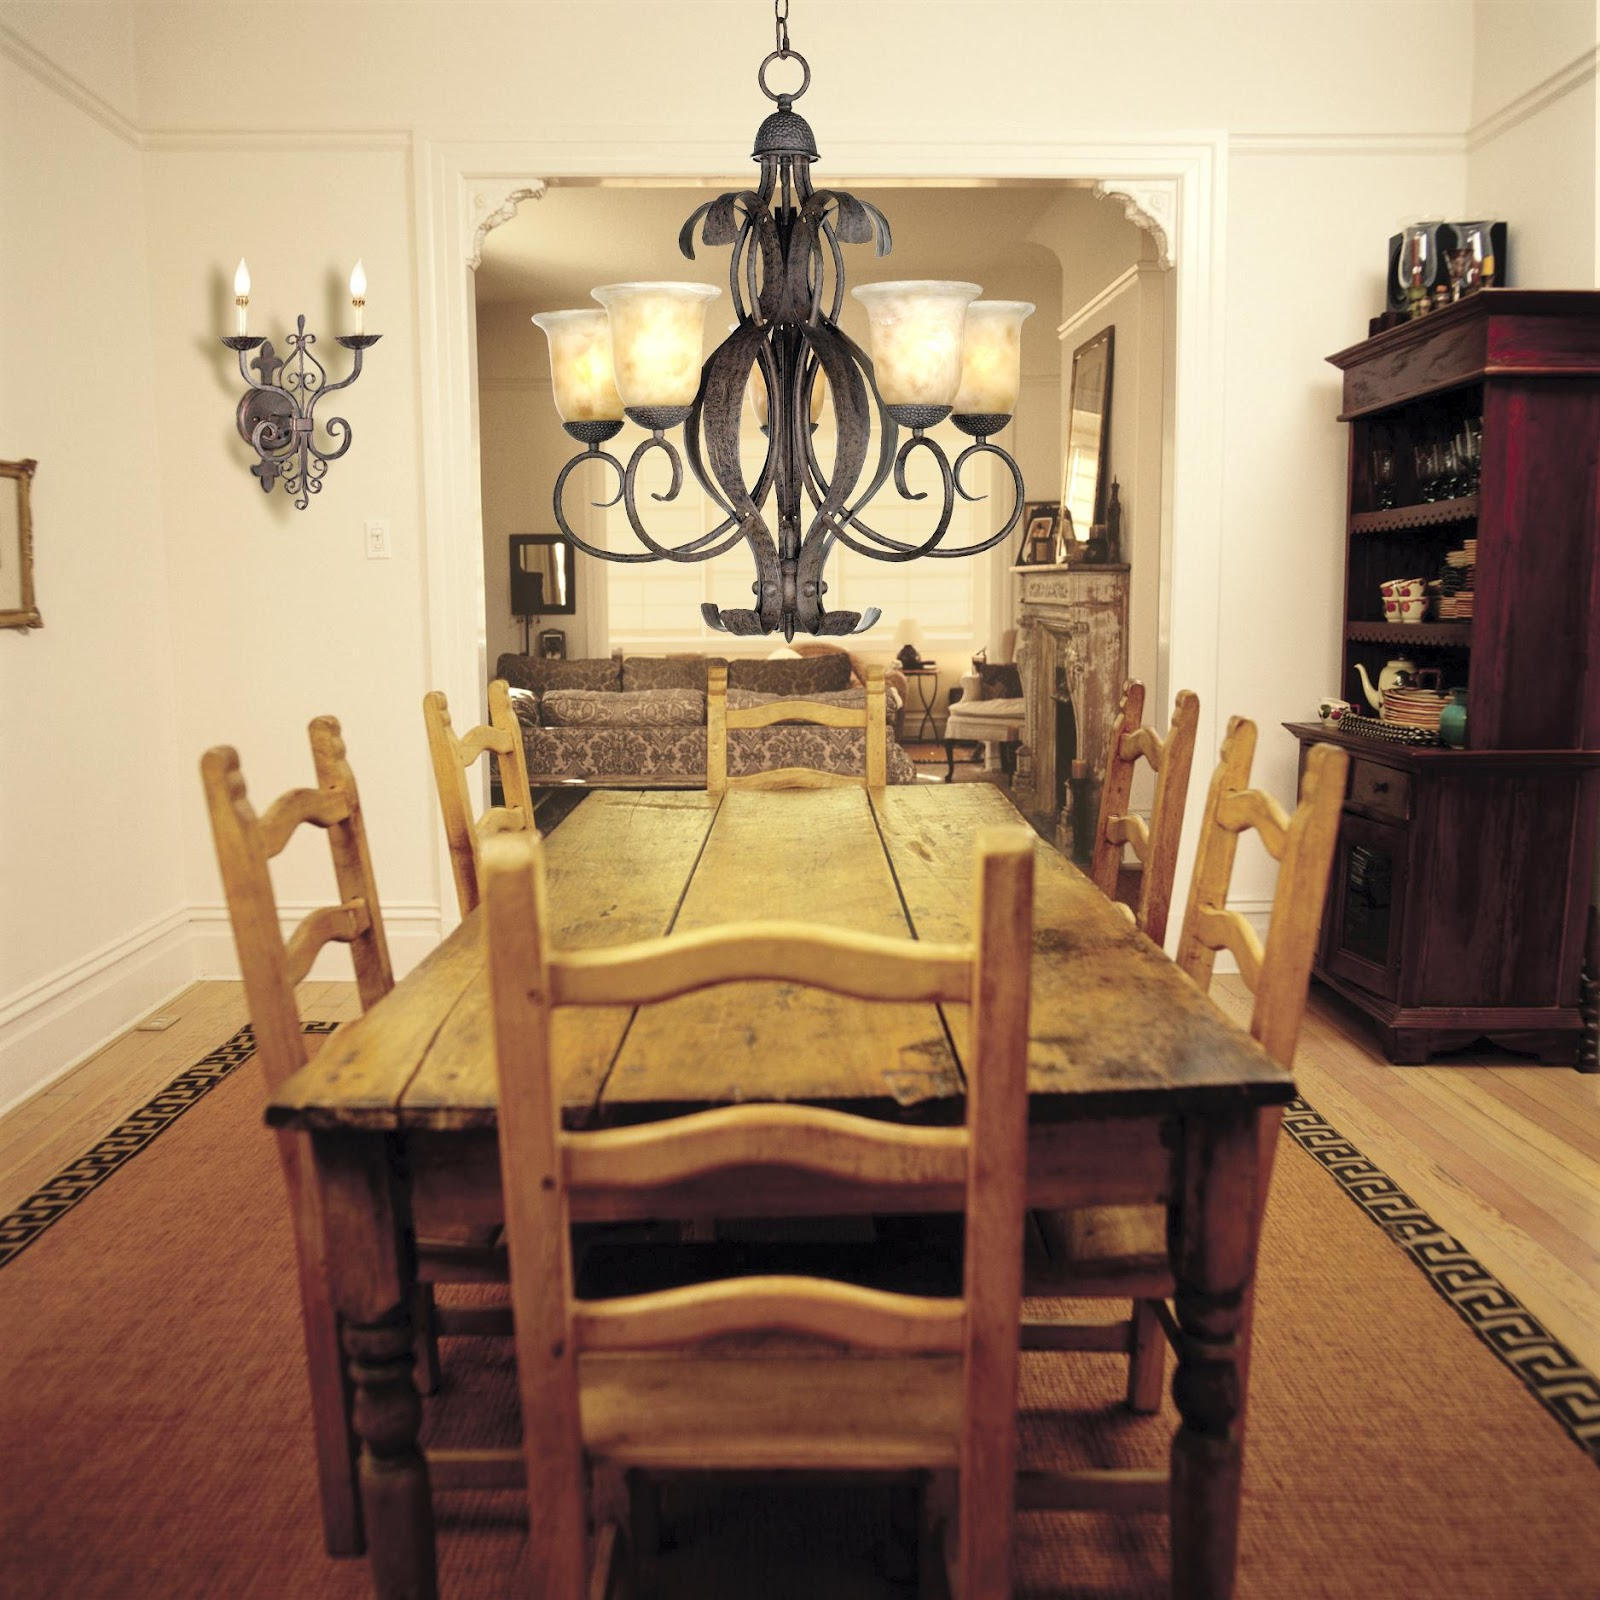 Small dining room chandeliers large and beautiful photos photo to dining room table chandeliers aloadofball Gallery